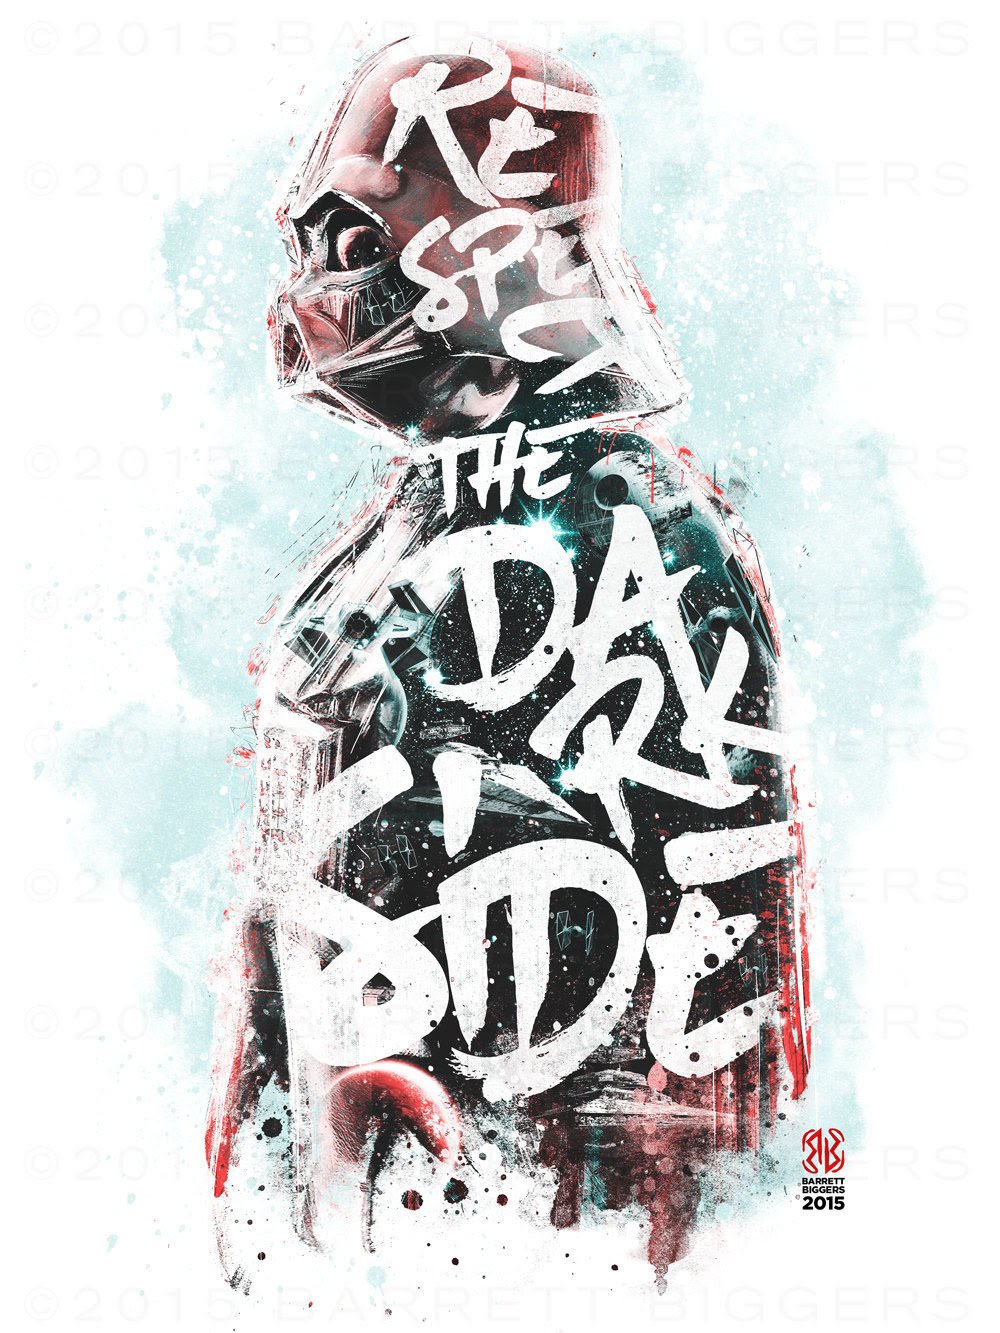 Respect the Dark Side - Created by Barrett Biggers